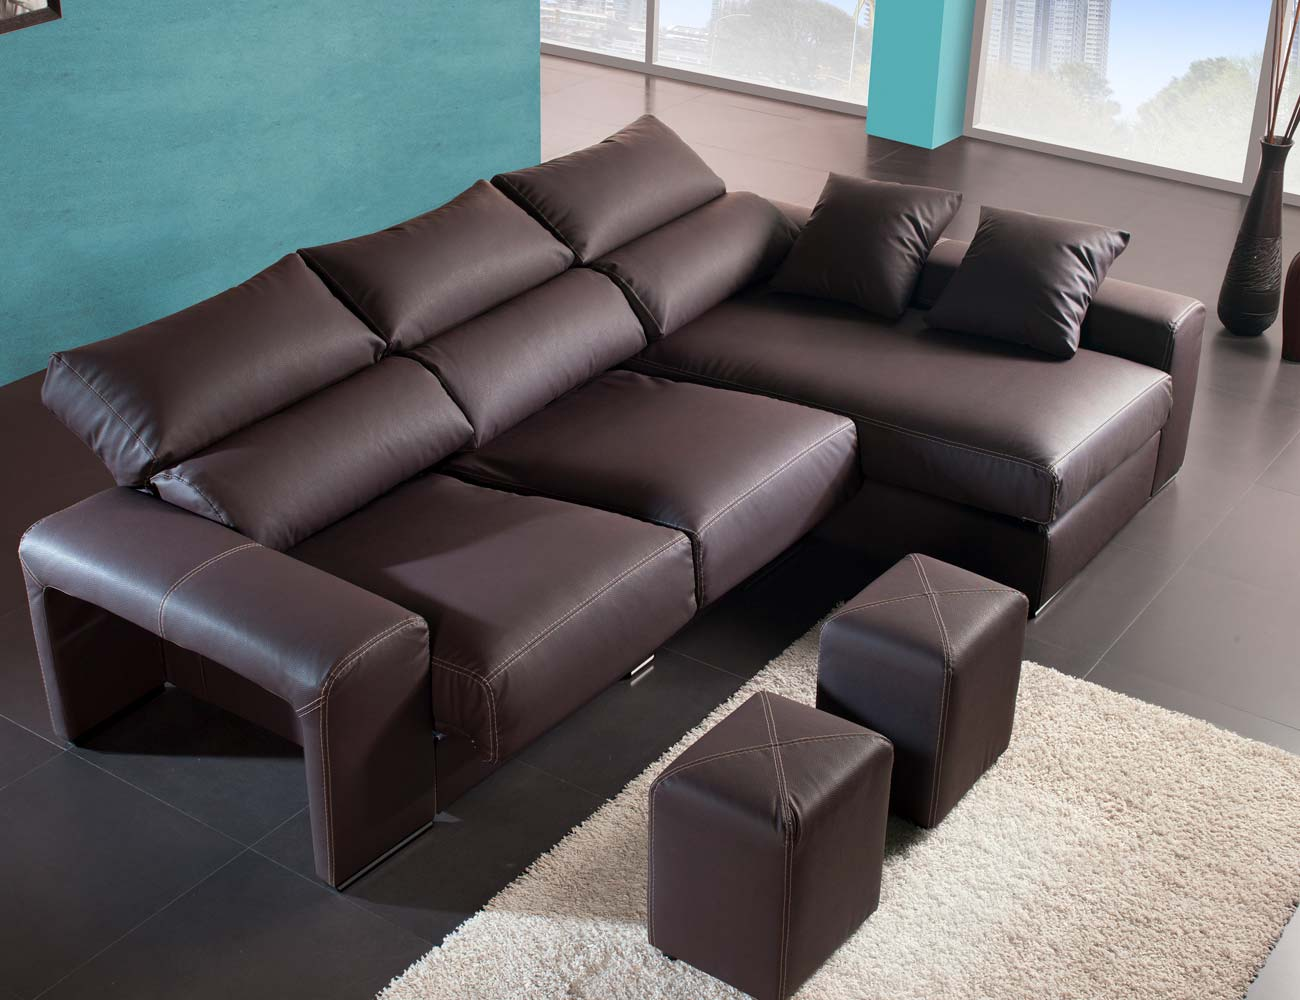 Sofa chaiselongue moderno polipiel chocolate poufs taburetes37